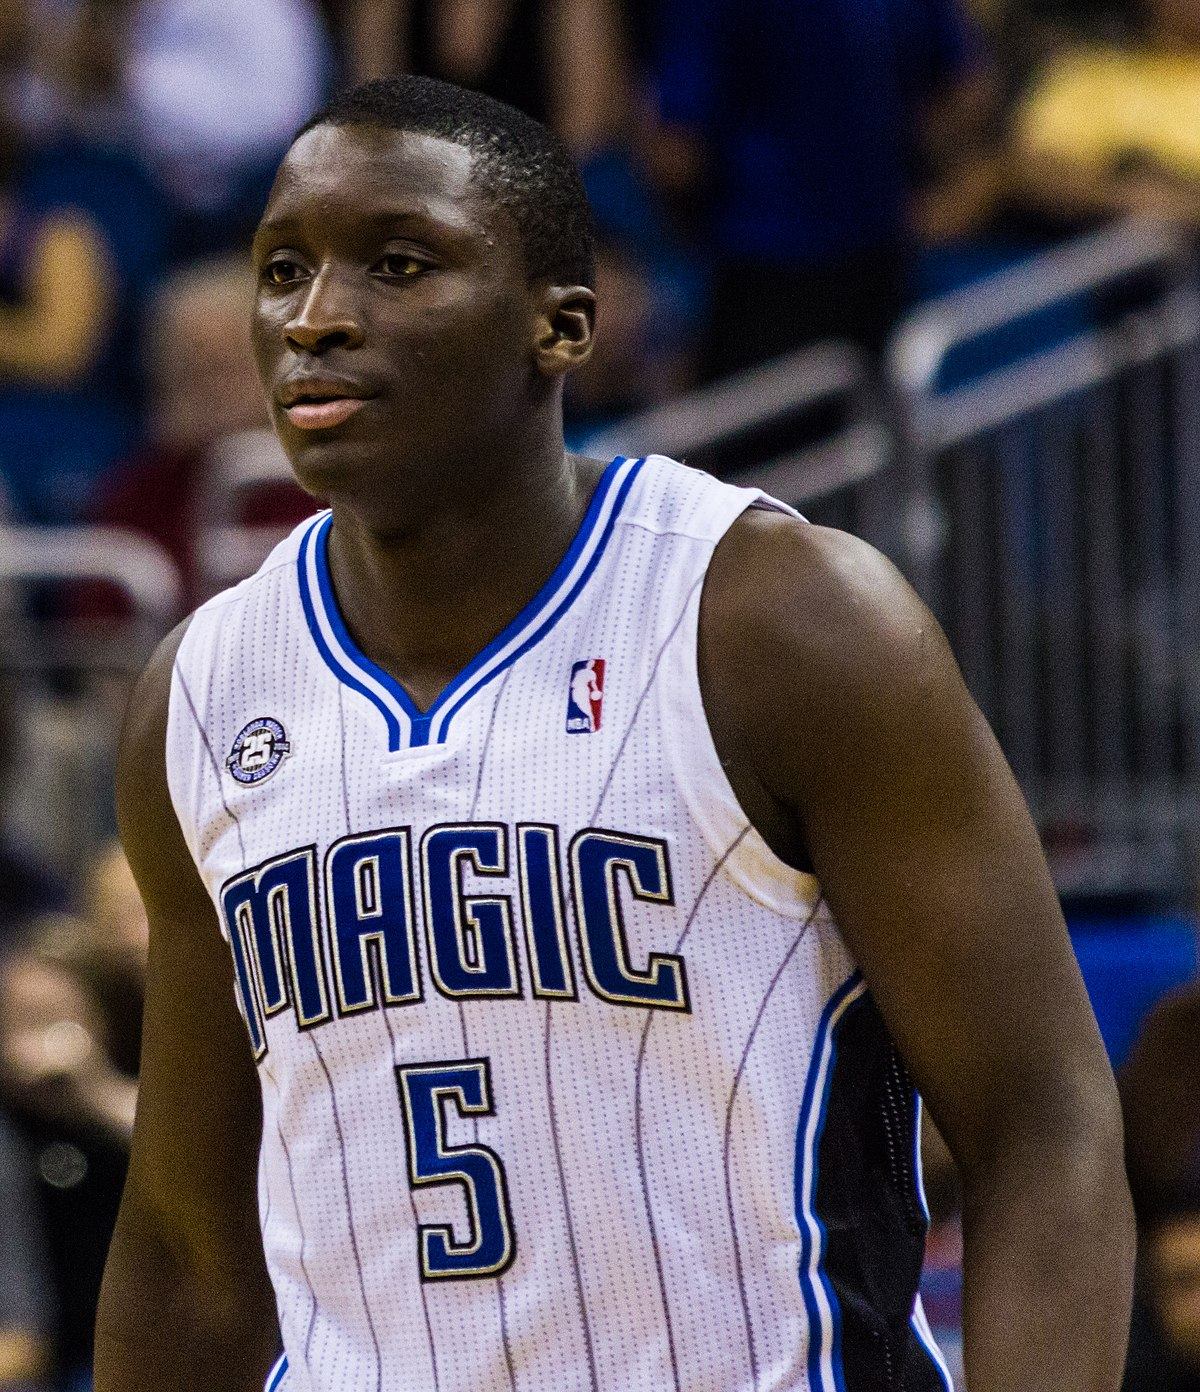 how tall is victor oladipo